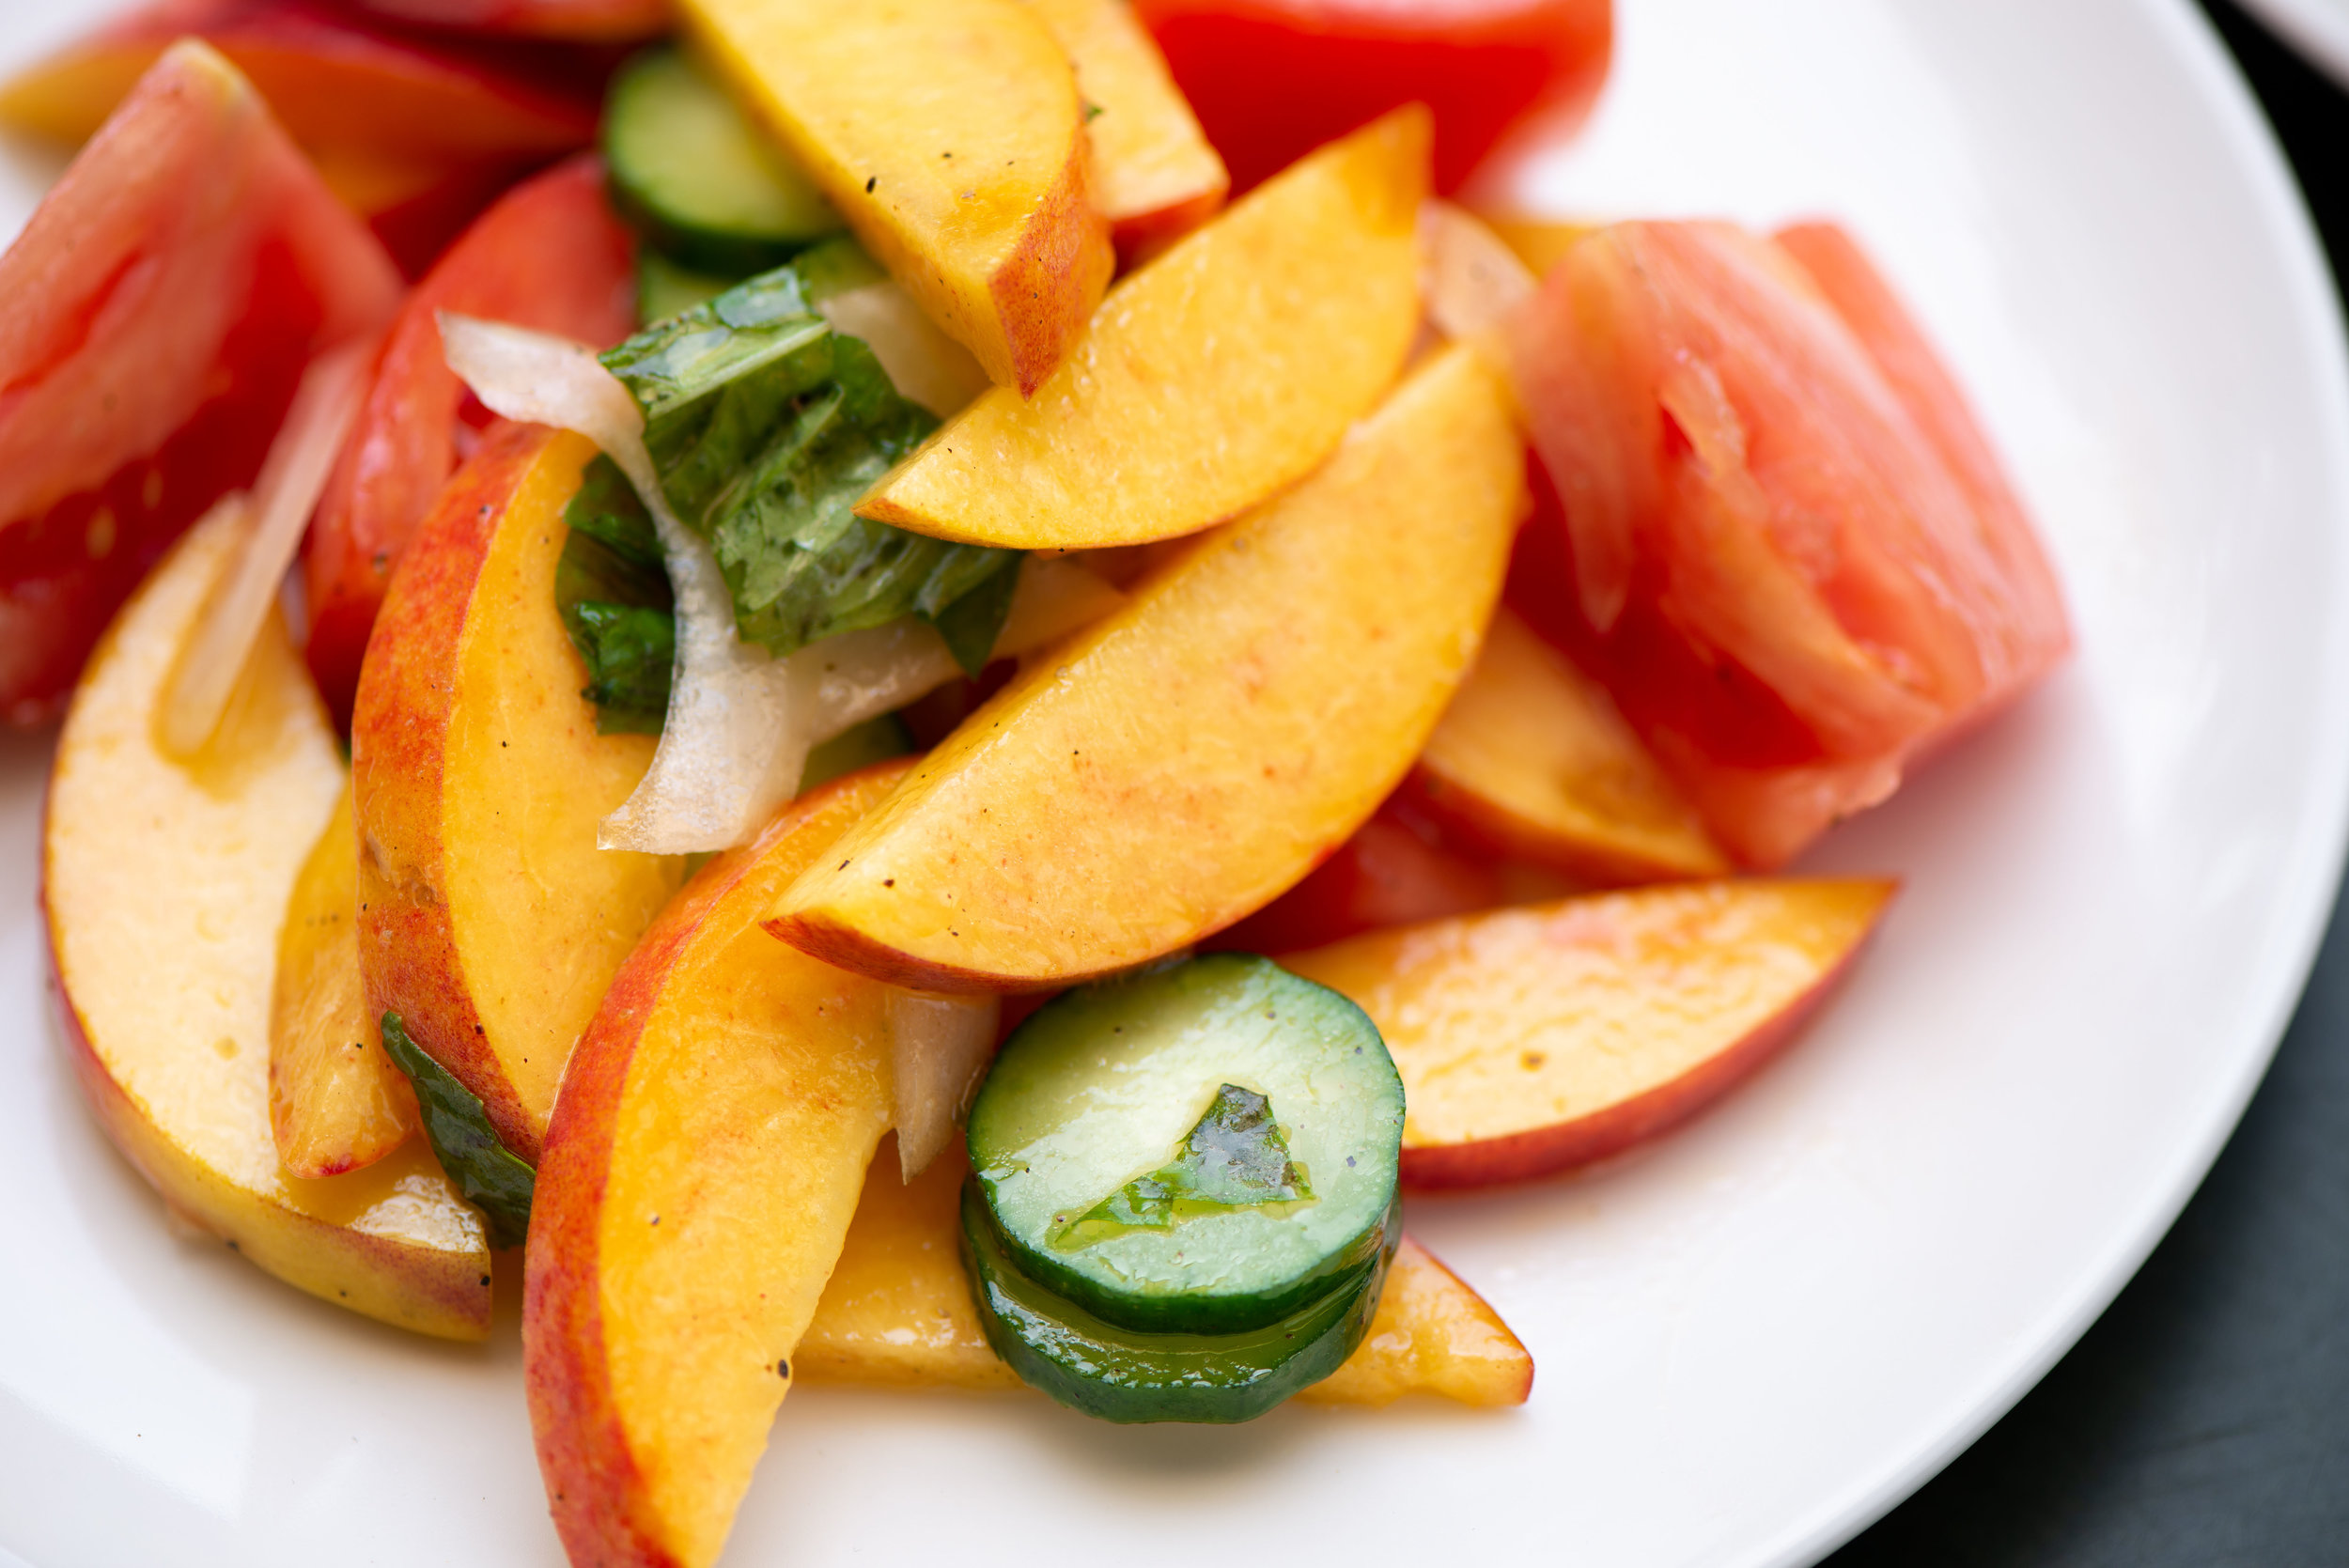 Peach and Tomato Salad copy.jpg